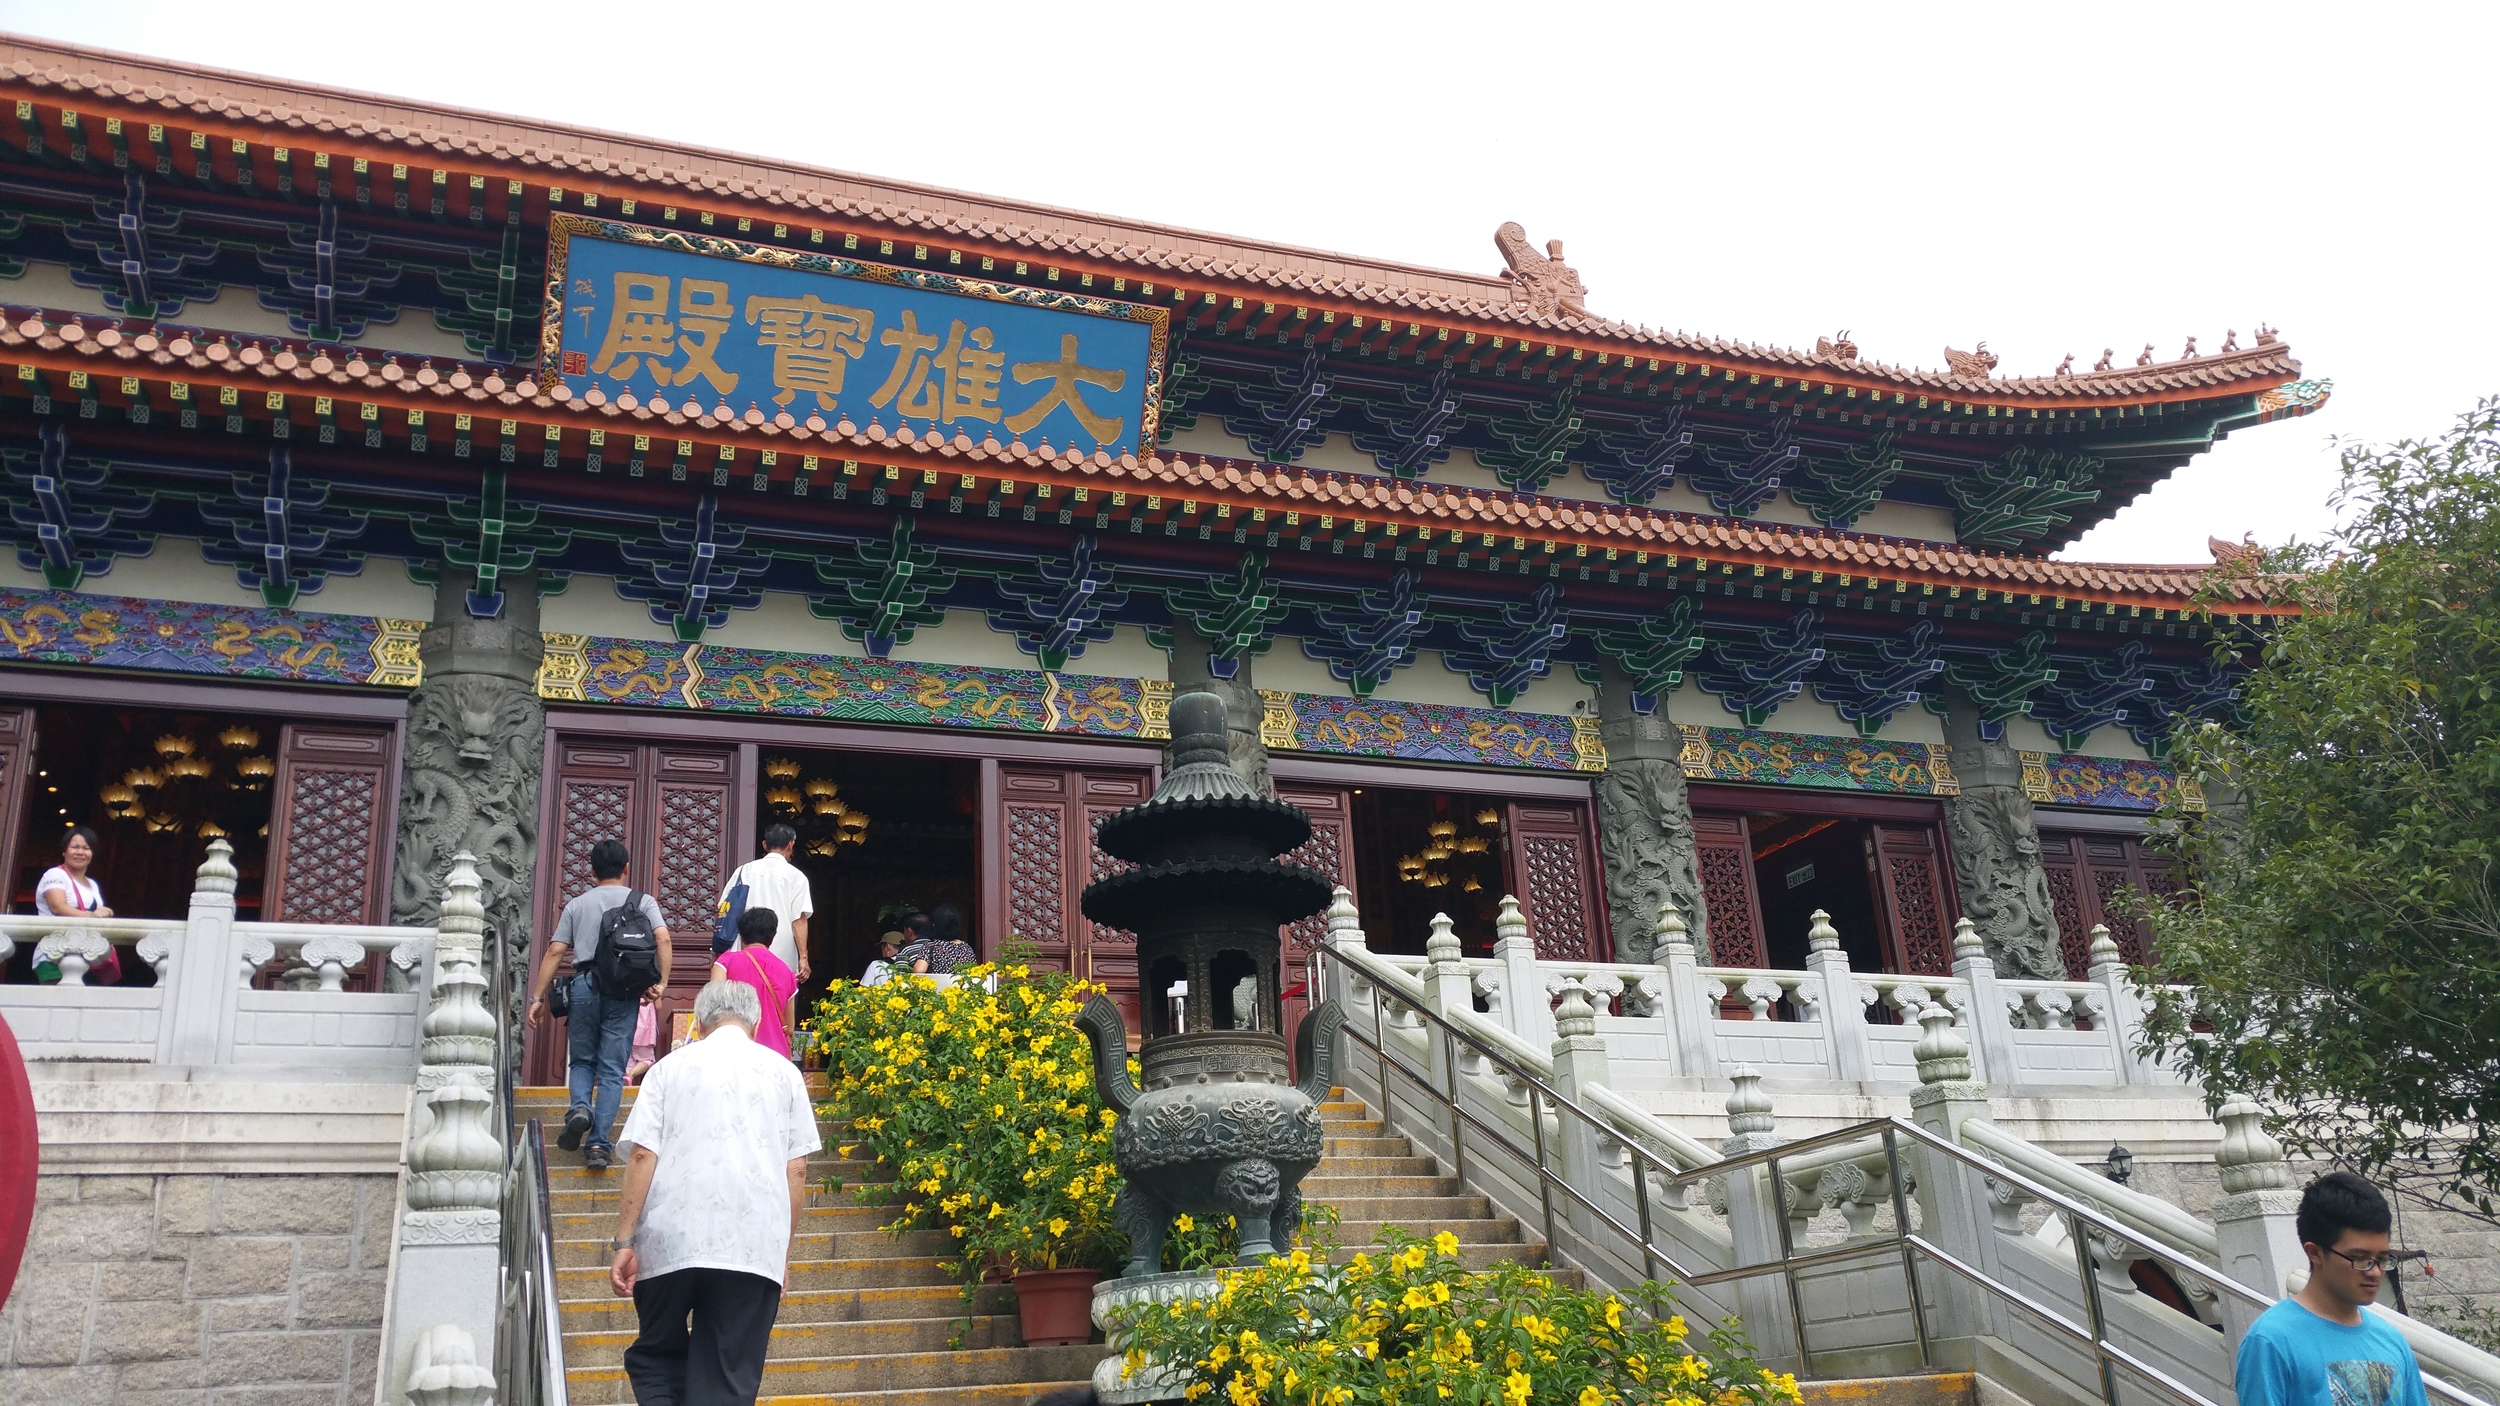 The monastery up close. A lot more colorful than the Chi Lin Nunnery!